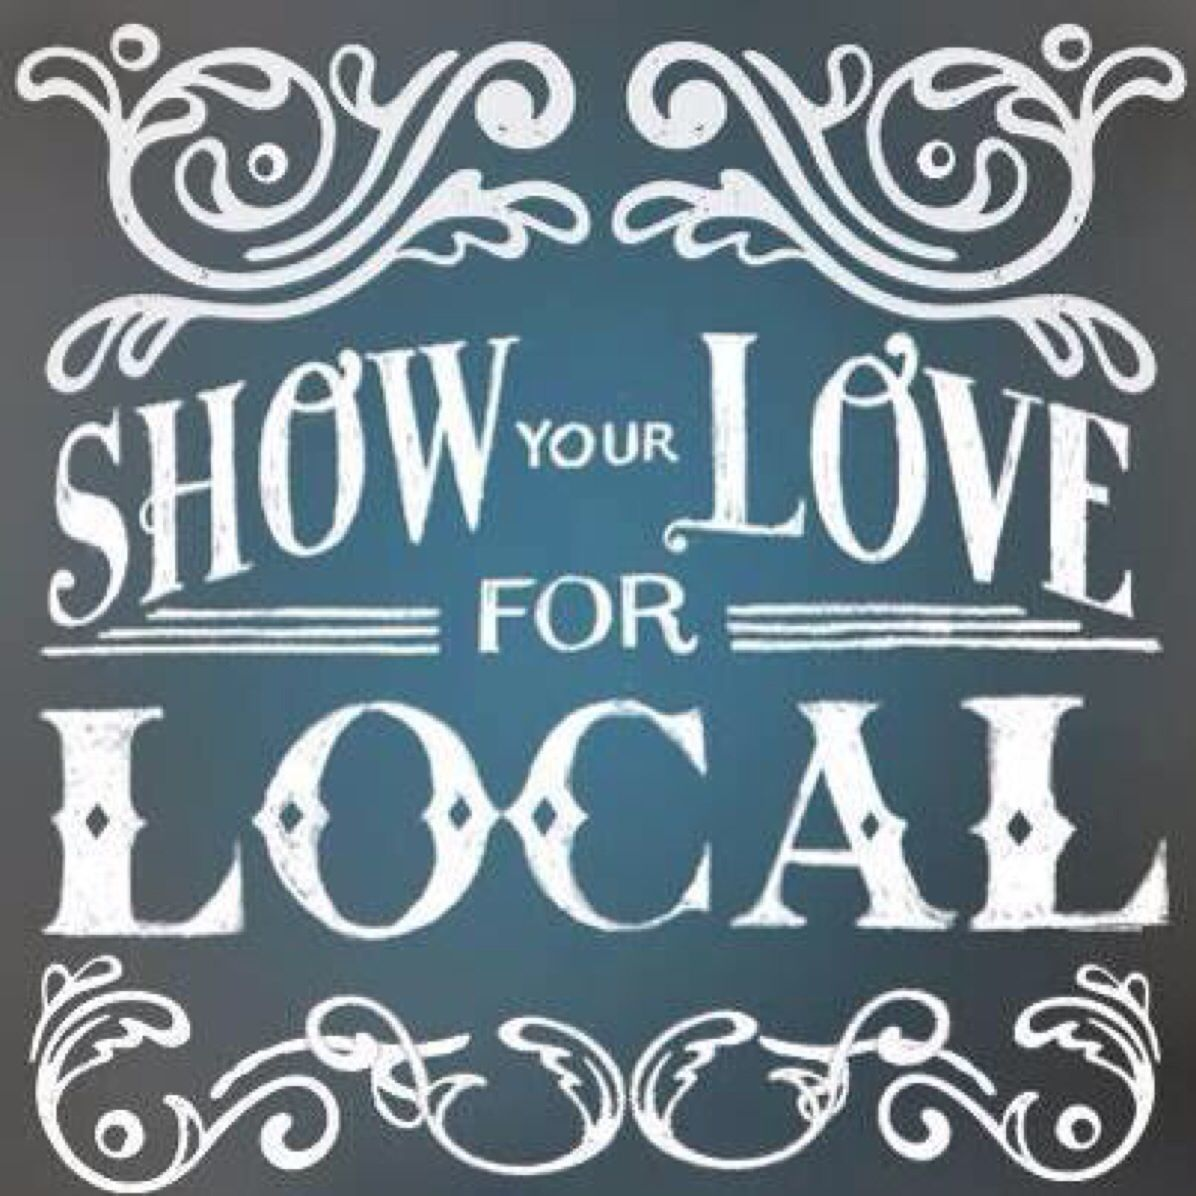 We support our local suppliers by stocking local